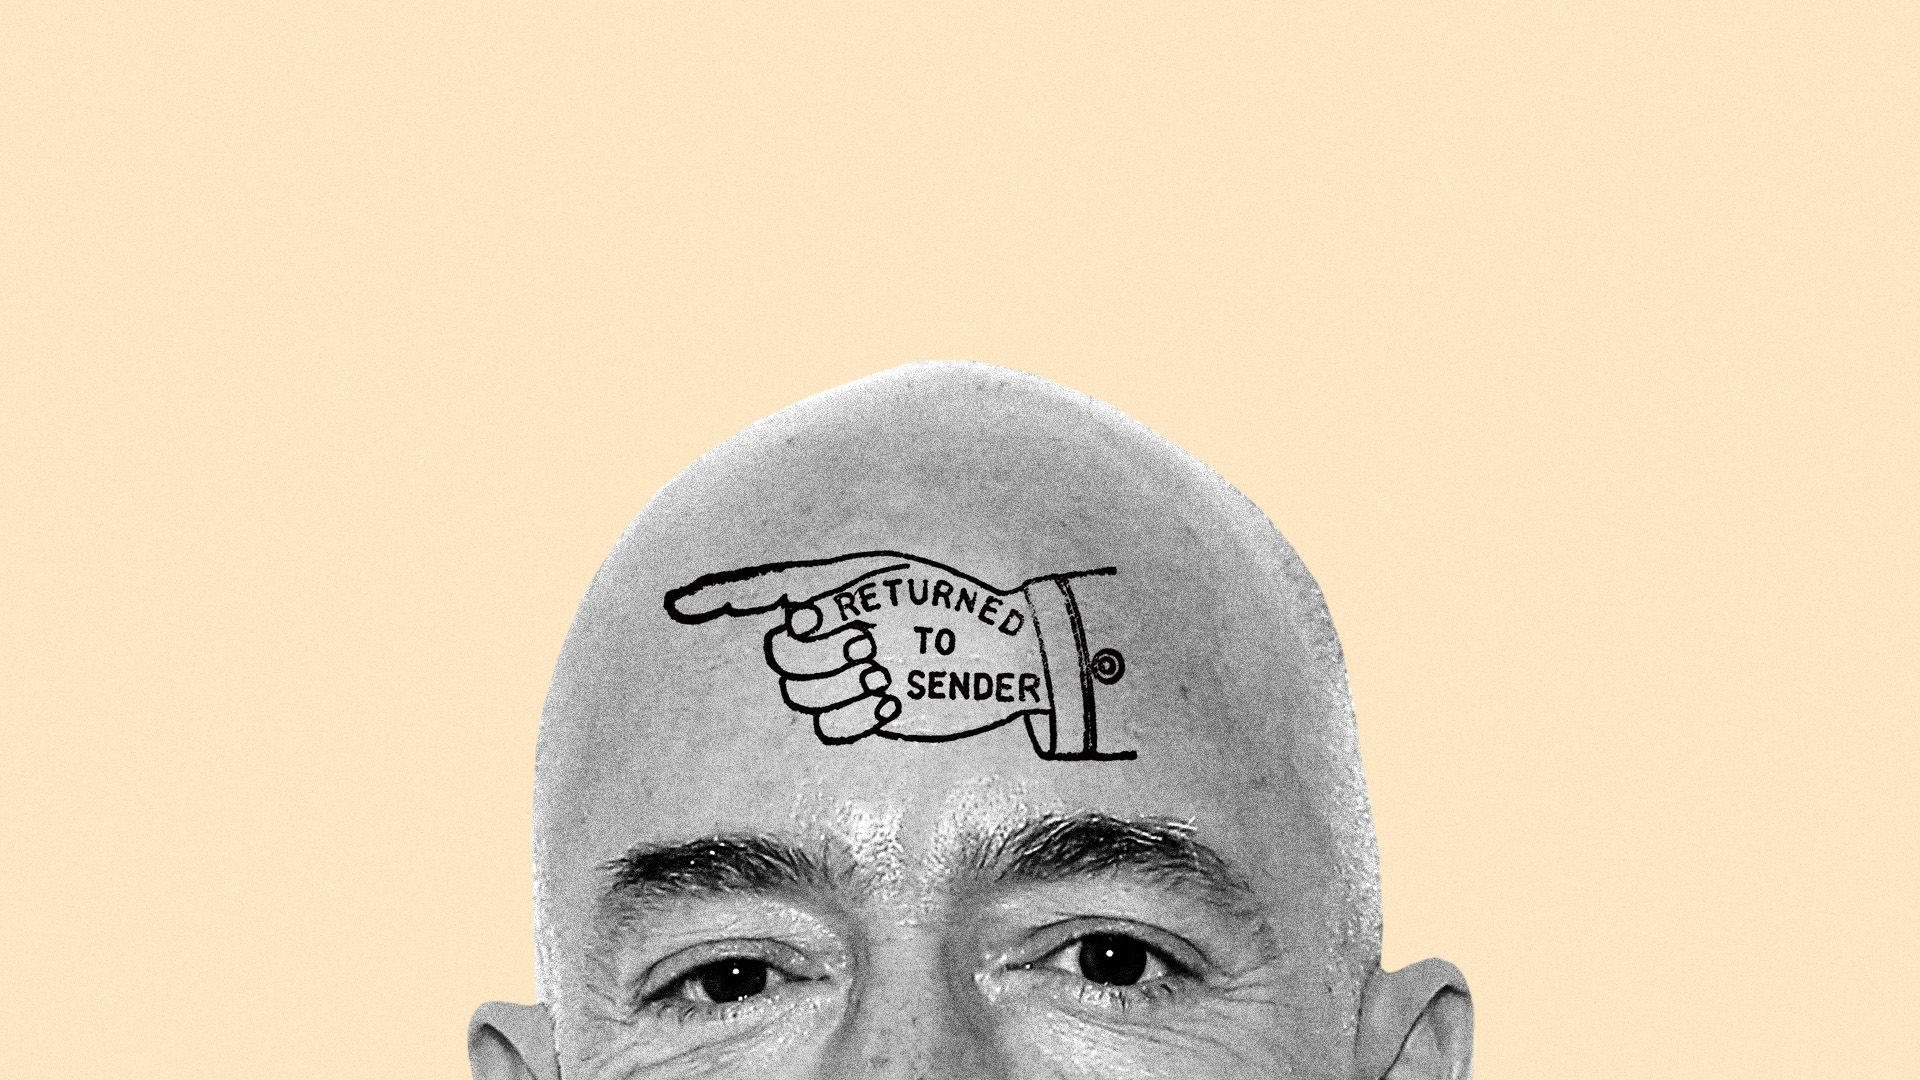 "In this image, Jeff Bezo's forehead is visible against a light yellow background. A cartoon illustration on his forehead says ""return to sender."""